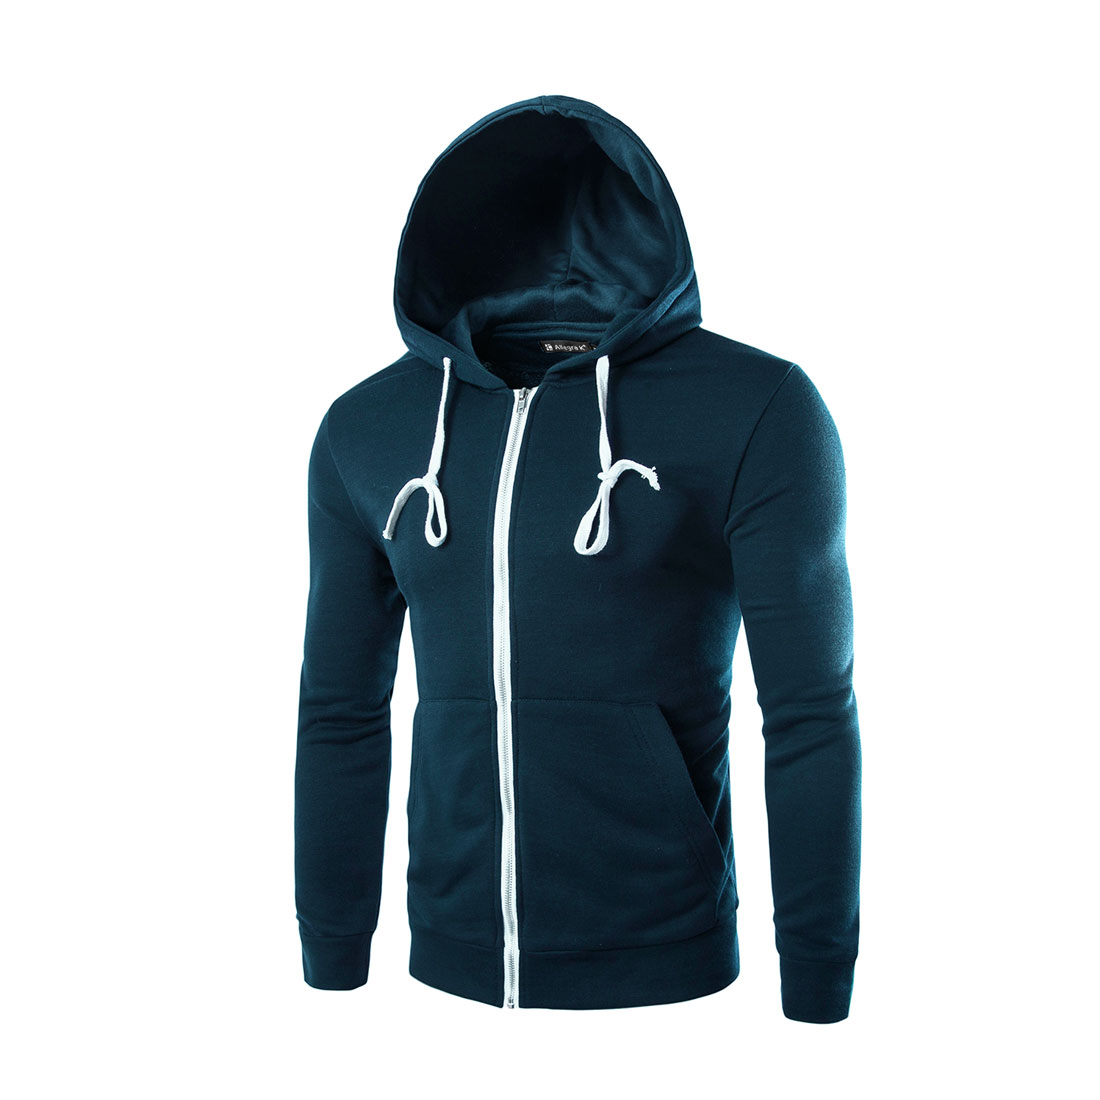 Unique Bargains Men Long Sleeves Zip Fastening Fashion Drawstring Hoodies Navy Blue L